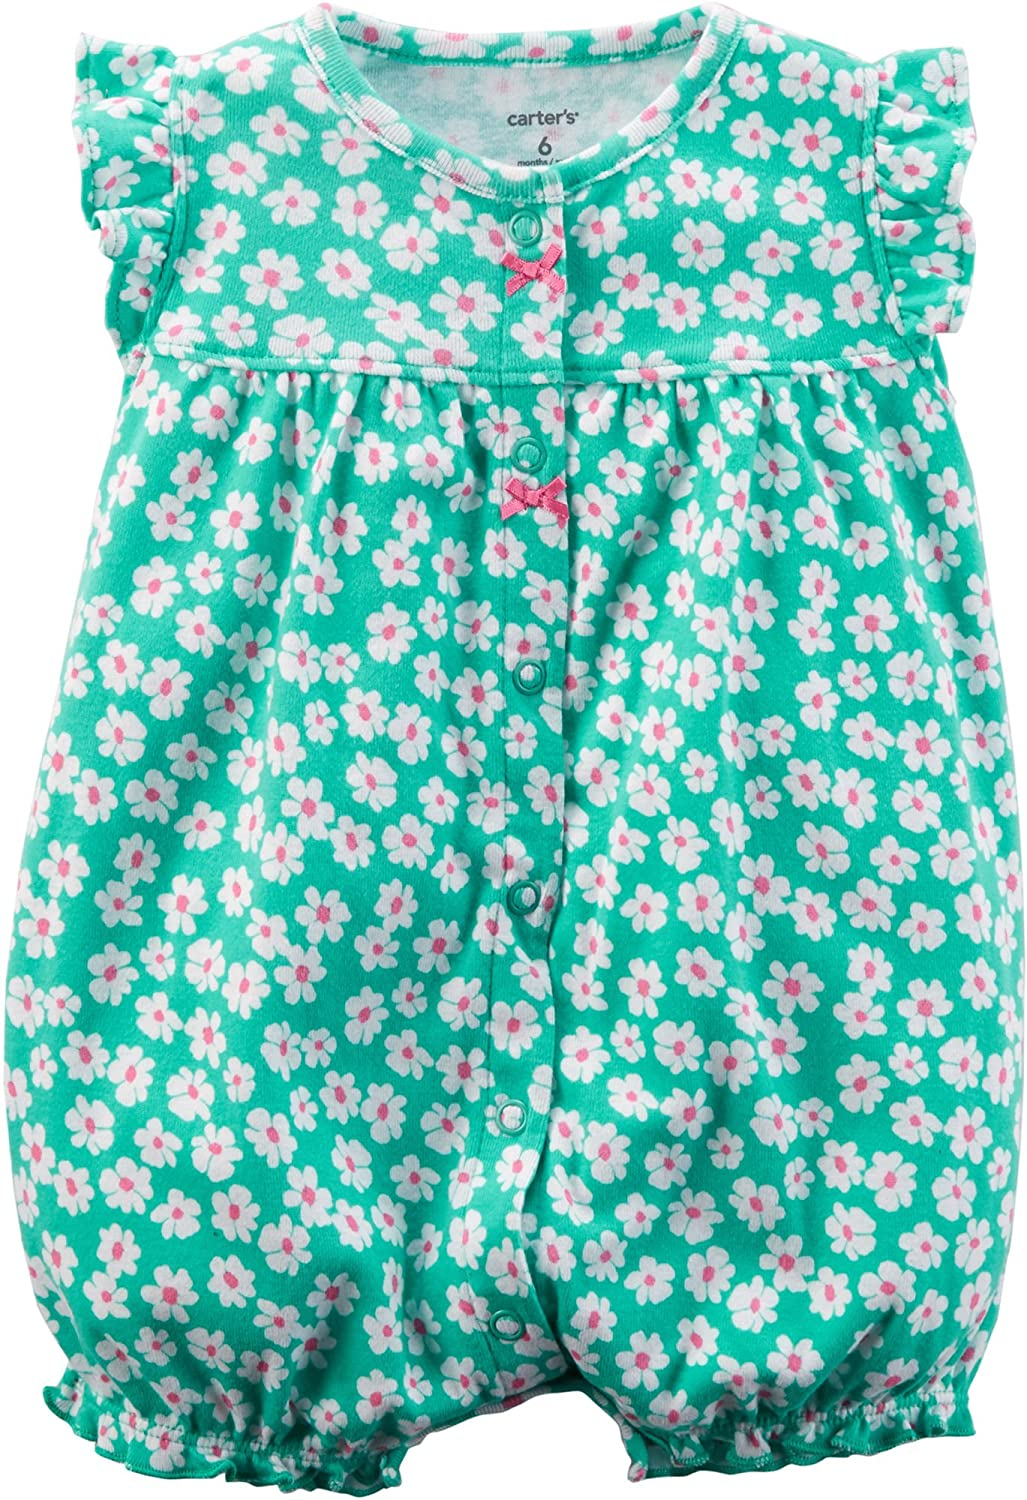 Carters Baby Girls Floral Ruffle Bottom Snap-Up Romper 18 Months Turquoise Green Multi